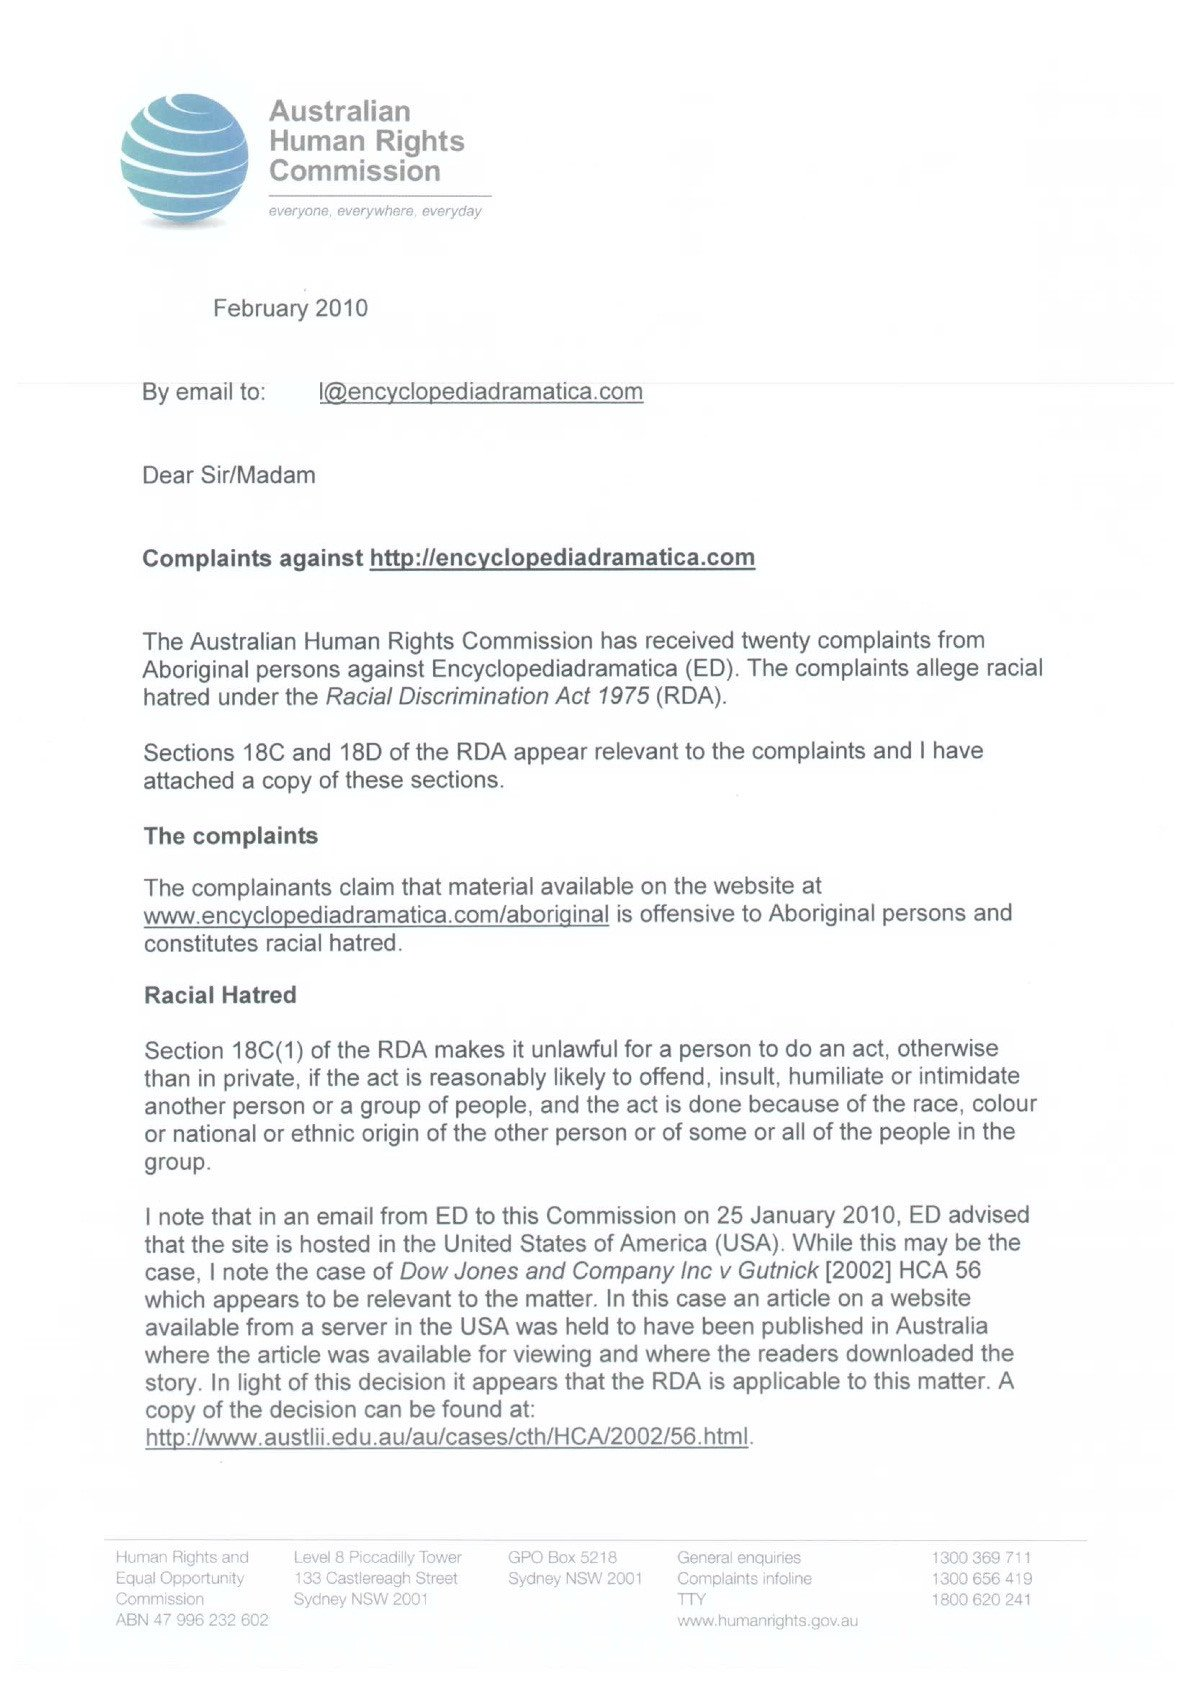 Sample Discrimination Complaint Letter About the Mission Australian Human Rights Mission